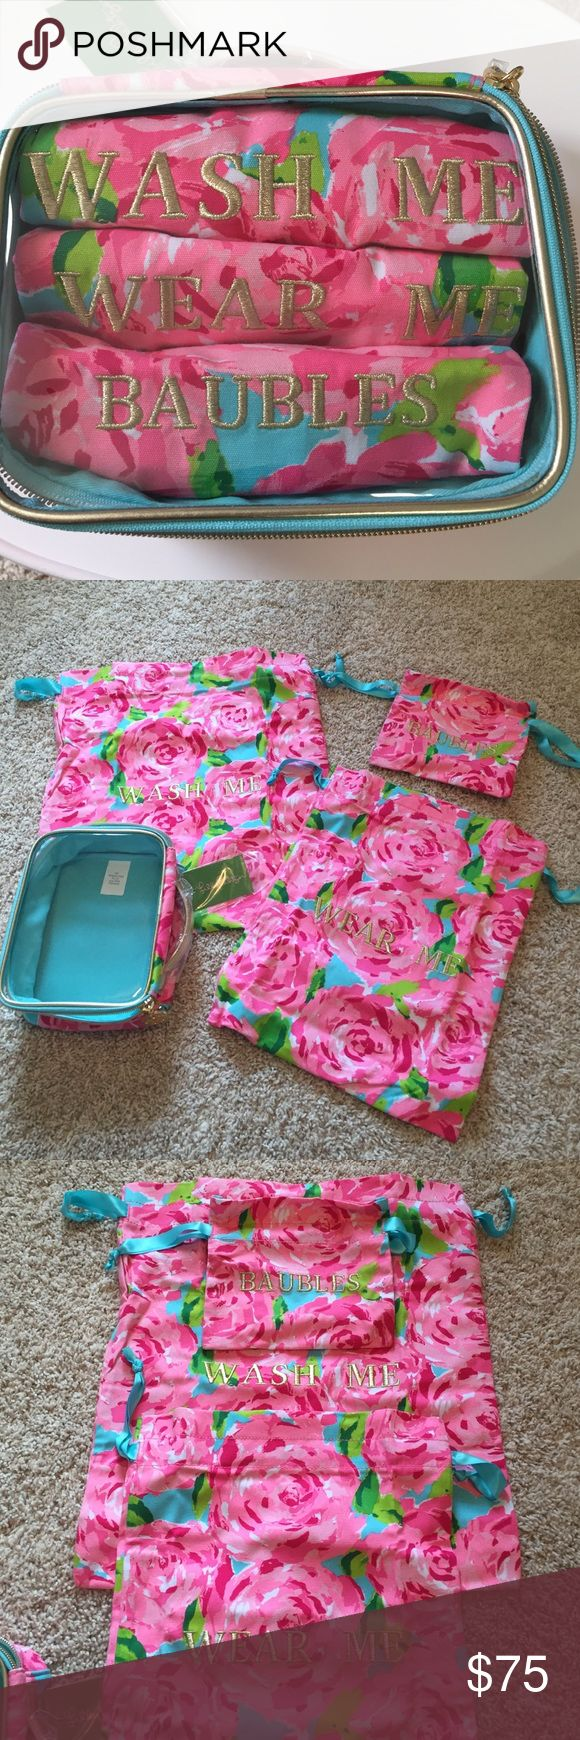 NWT Lilly Pulitzer Wash & Wear Bags with Case NWT Lilly Pulitzer Wash & Wear Bags/Pouches with Case (Wash Me, Wear Me, Baubles). Style # 19854, Hotty Pink, First Impression Accessories. Great for travel! Store clothes and jewelry. Check out the other items in my closet (including Lilly) to bundle & SAVE $$! Lilly Pulitzer Bags Travel Bags